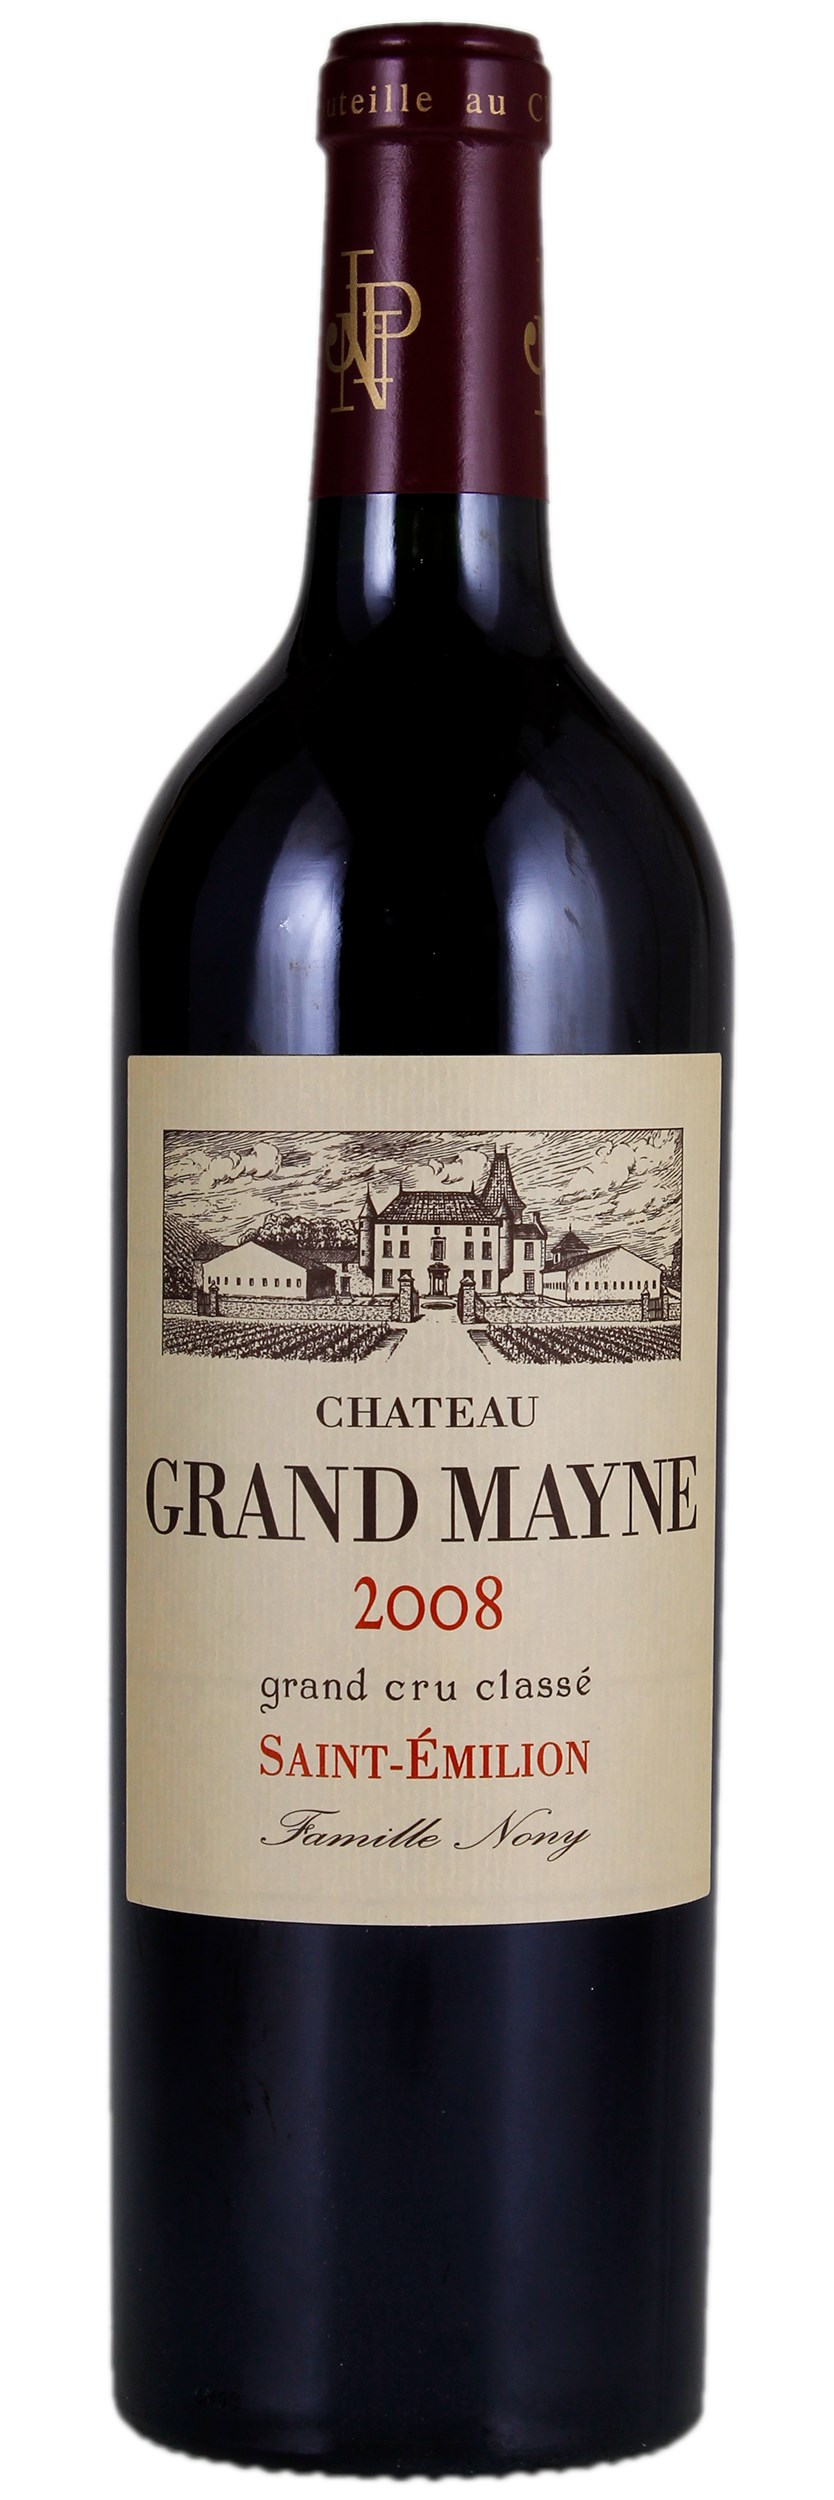 Chateau Grand Mayne 2008